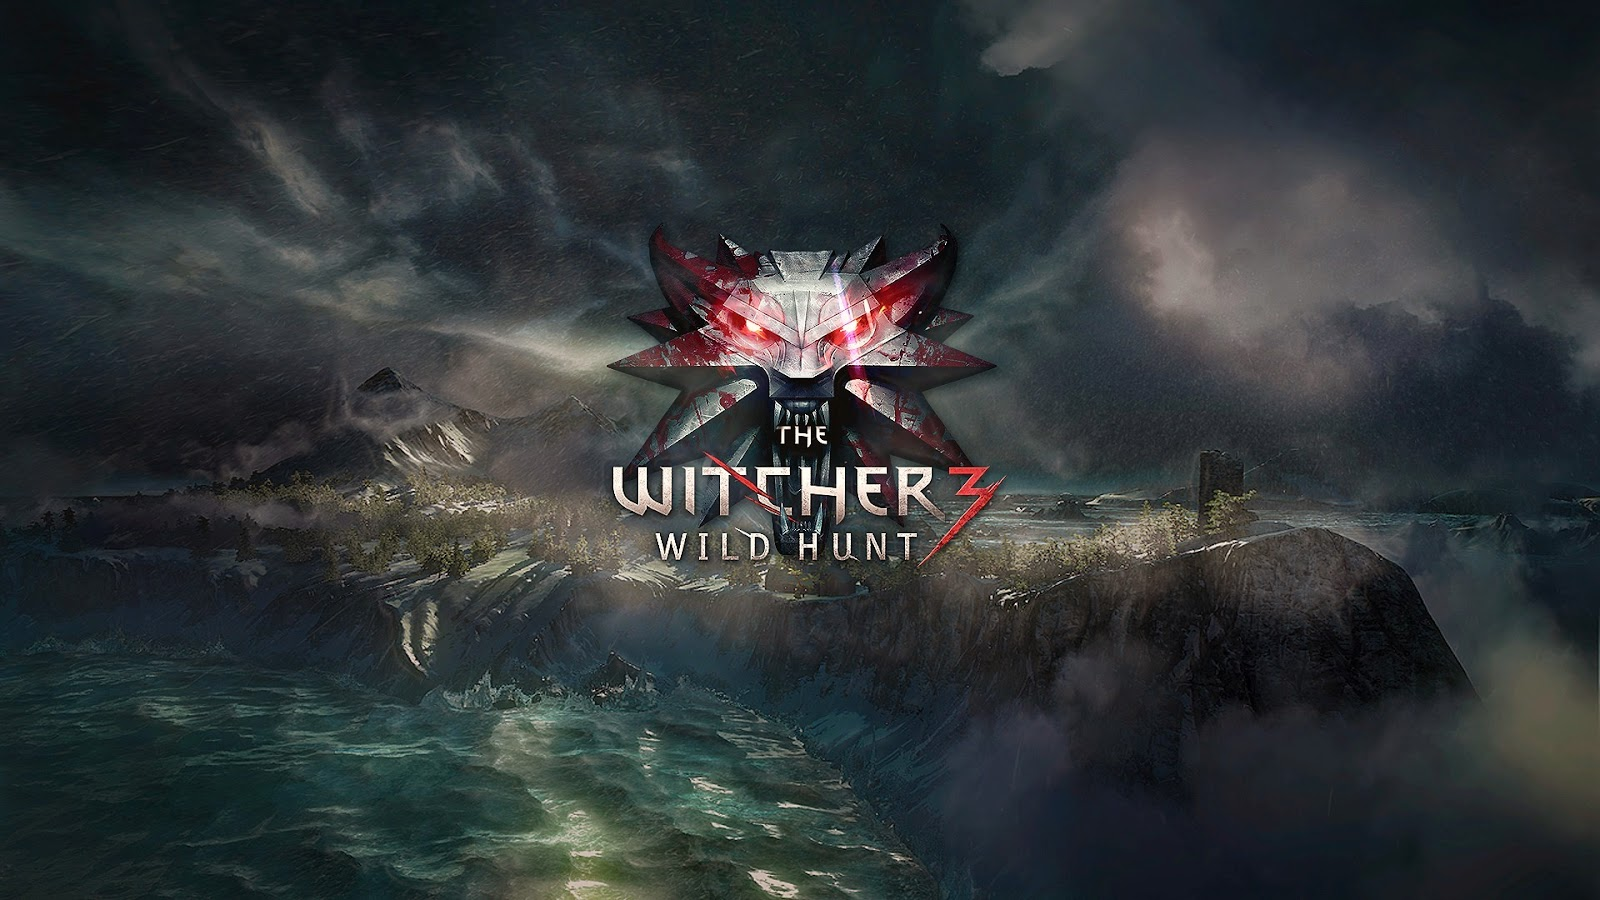 The Witcher 3 Review,Story And Price